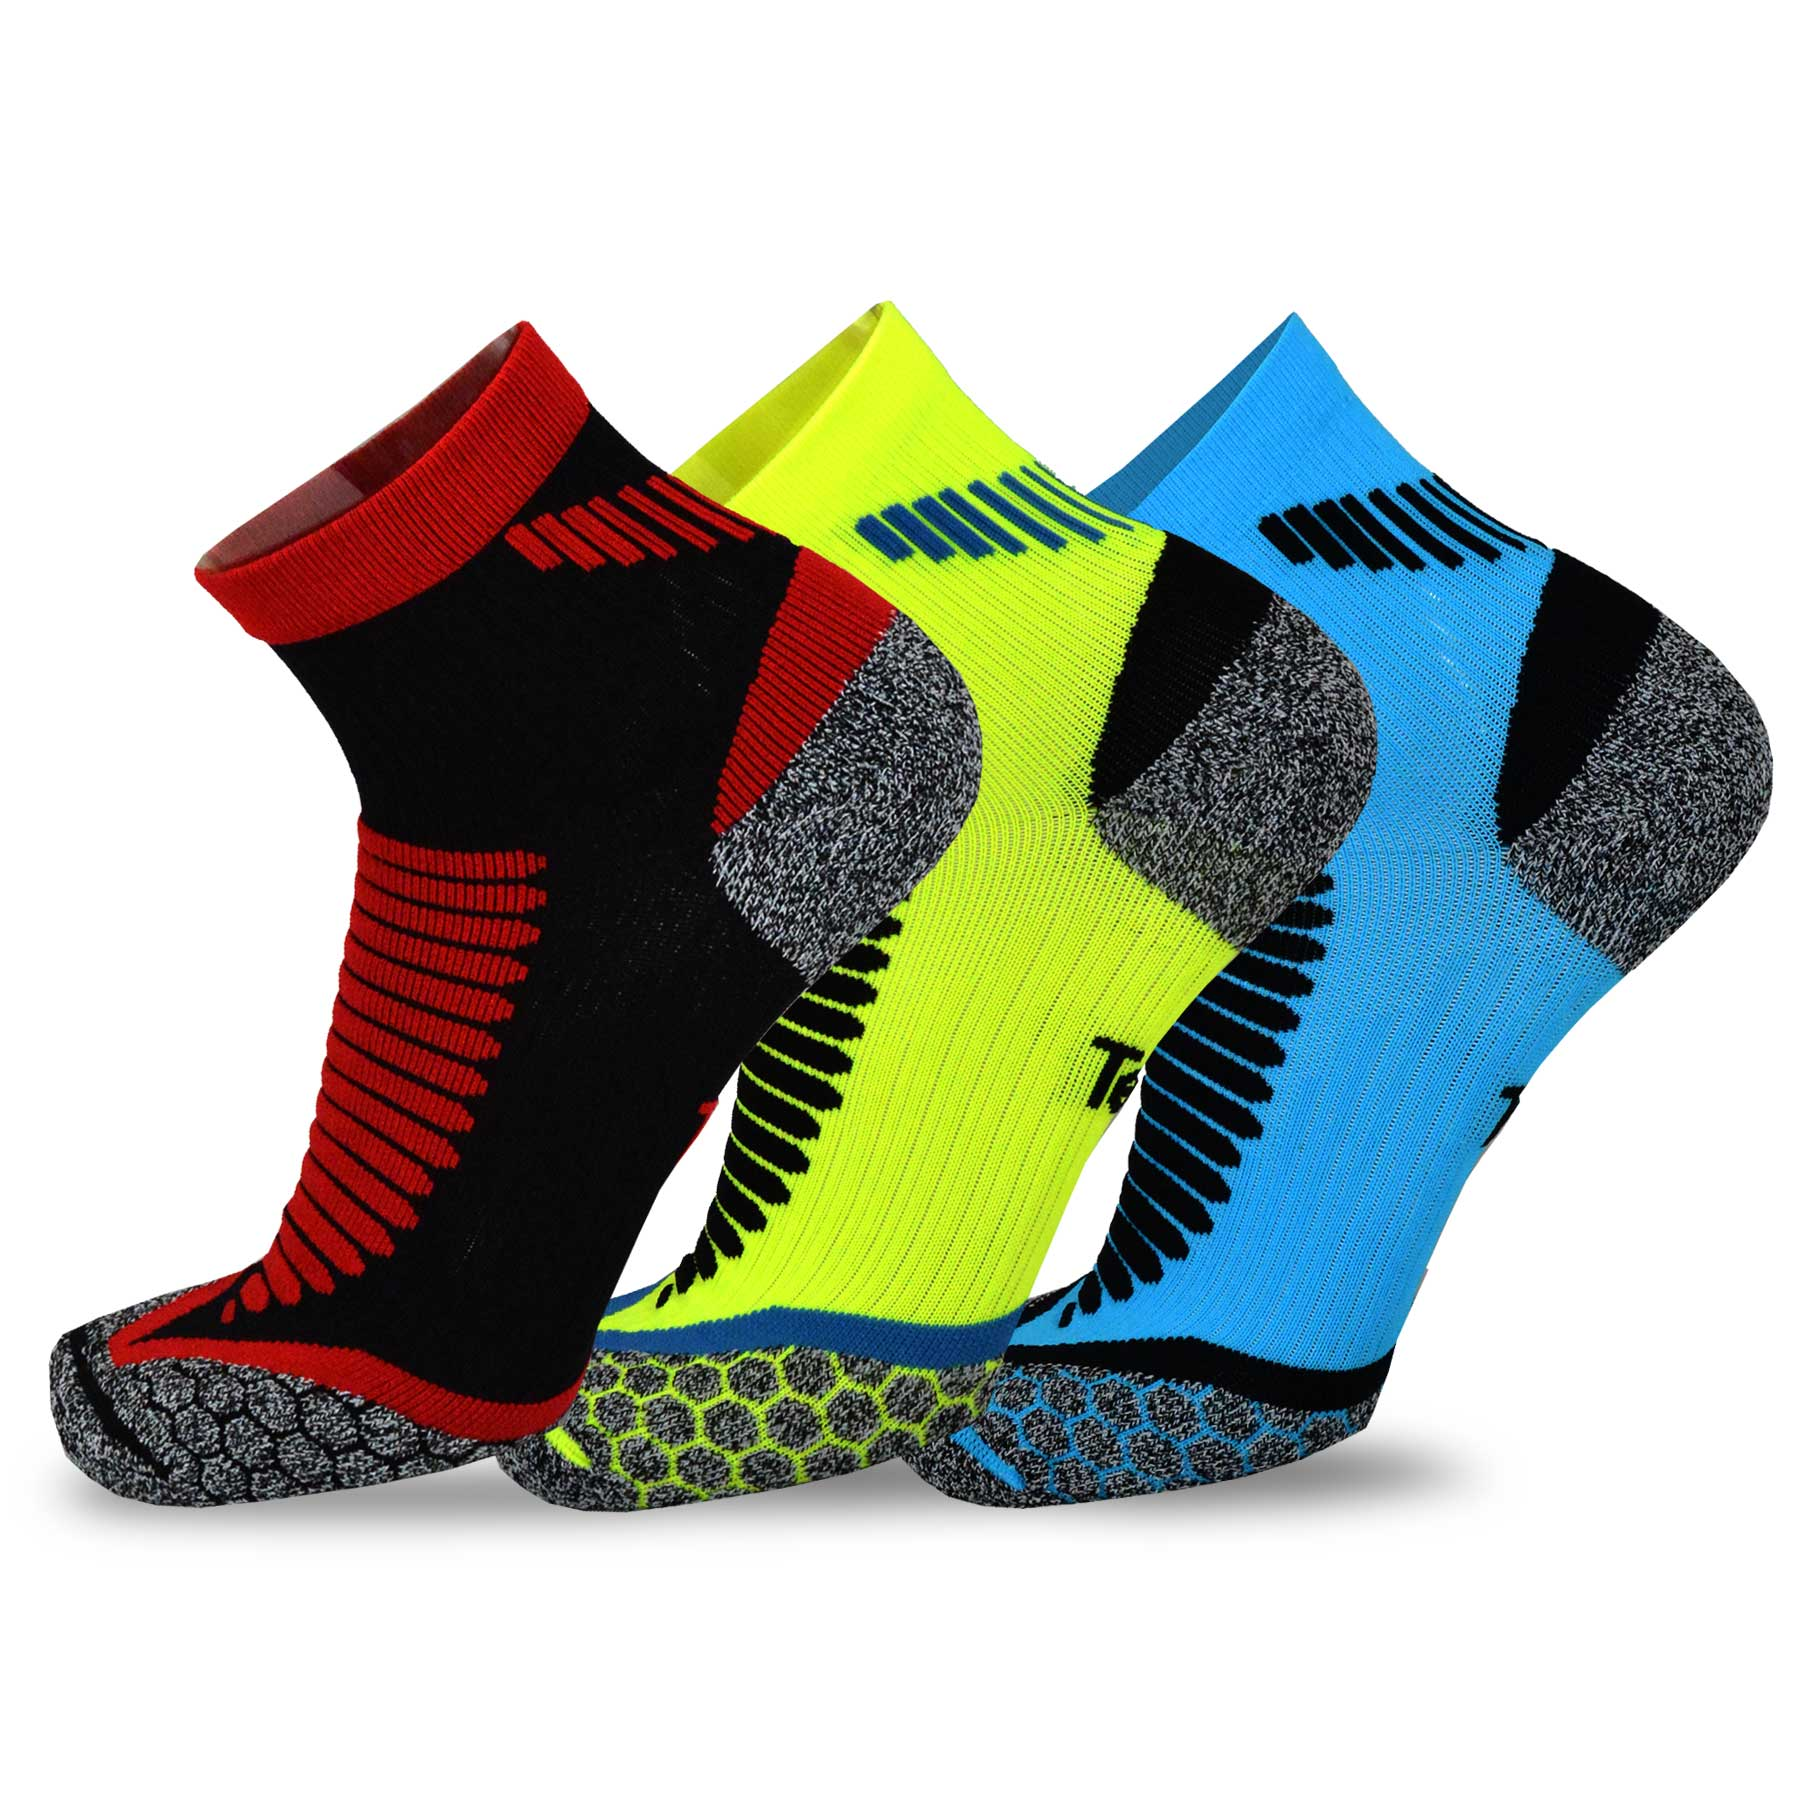 TeeHee Athletic Compression Cushioned 3-Pack Quarter Crew Socks, Size 9-11